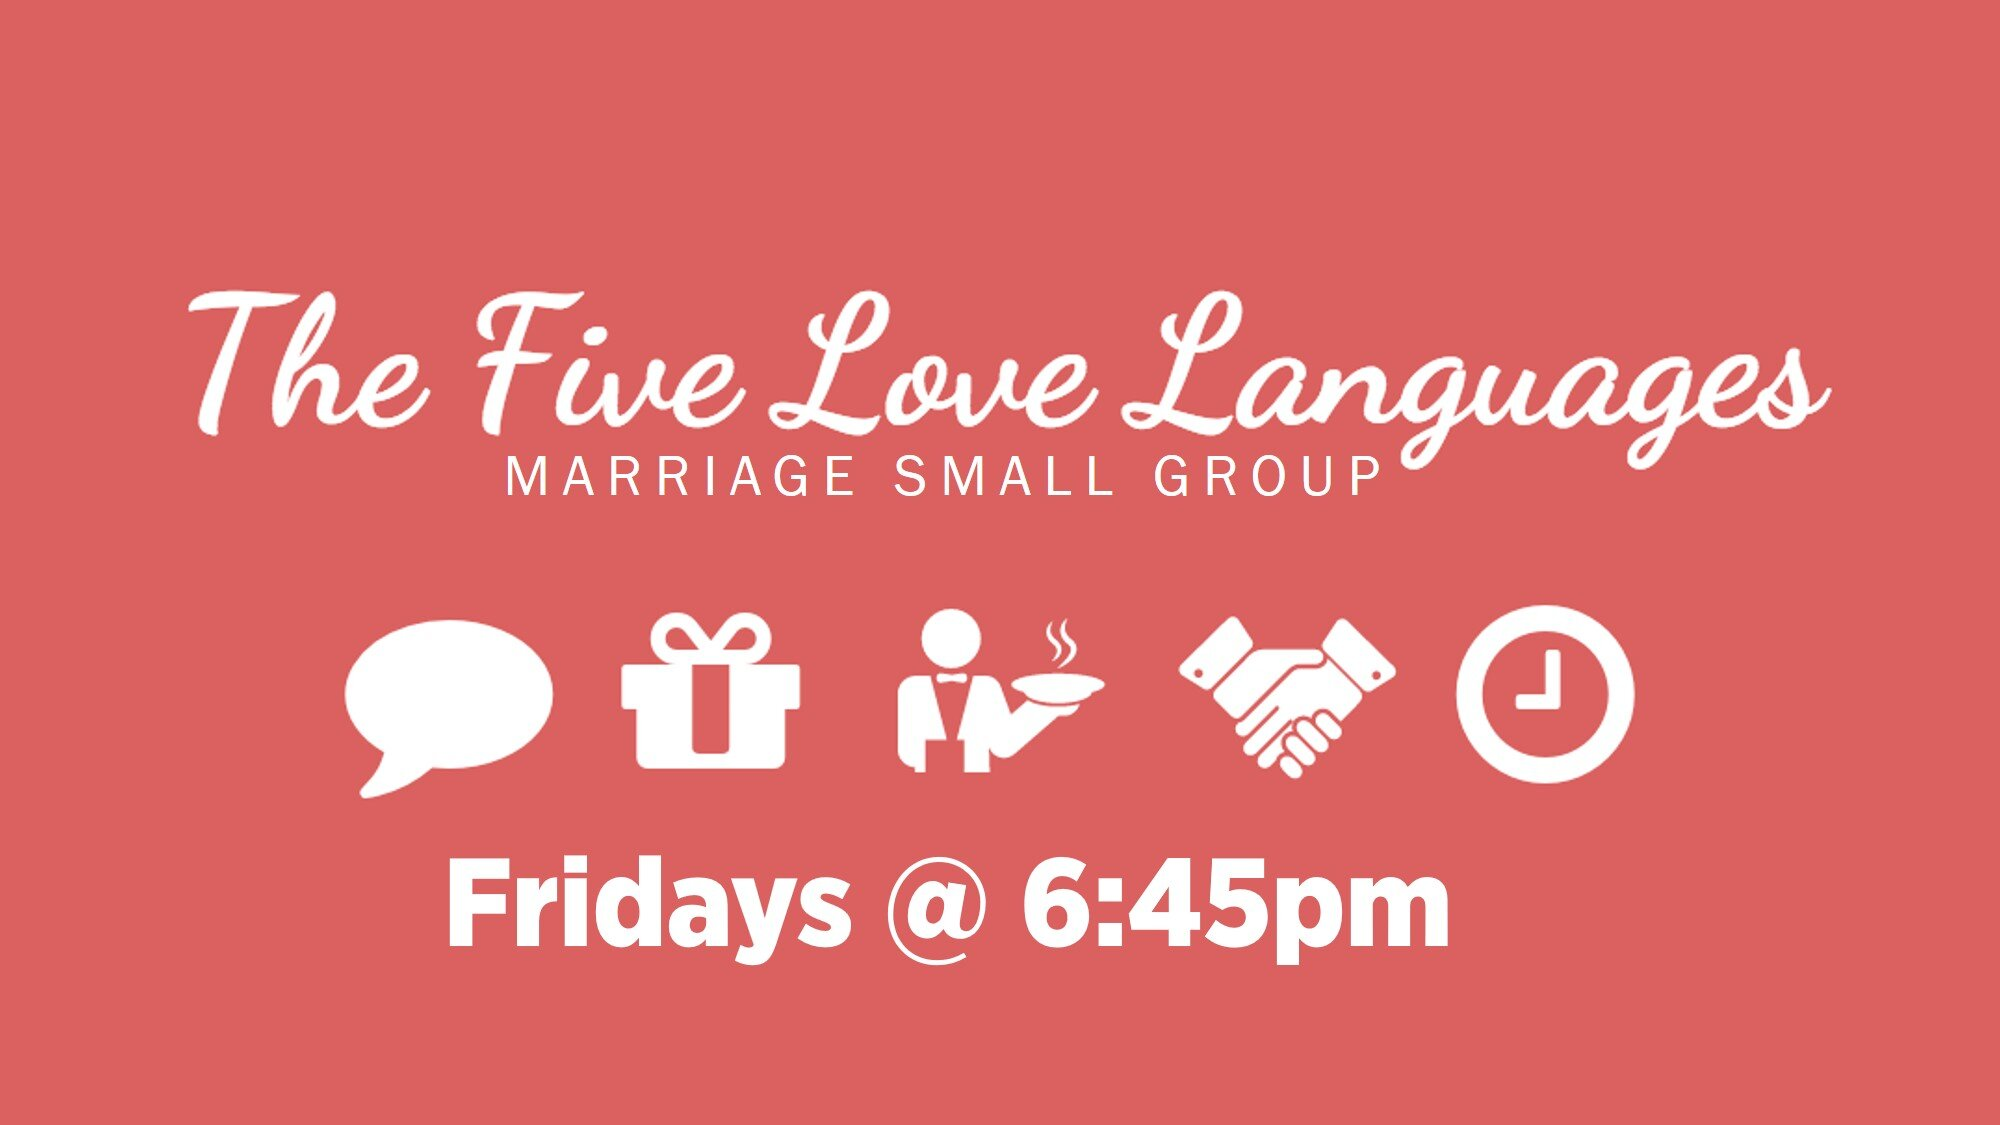 Fridays @ 6:45pm - MARRIAGE SMALL GROUP You love each other, right? So why does it feel like you're not on the same page? The most common issue in any relationship is the communication barrier. Everyone experiences love differently, and it's easy to miss the mark when it comes to showing that you care. With a little help from The 5 Love Languages®, you can learn to identify the root of your conflicts, give and receive love in more meaningful ways, and grow closer than ever.LEADER: Howard & Jill Miller (Off Campus)Call Church Office at (209) 825-1220 for directions